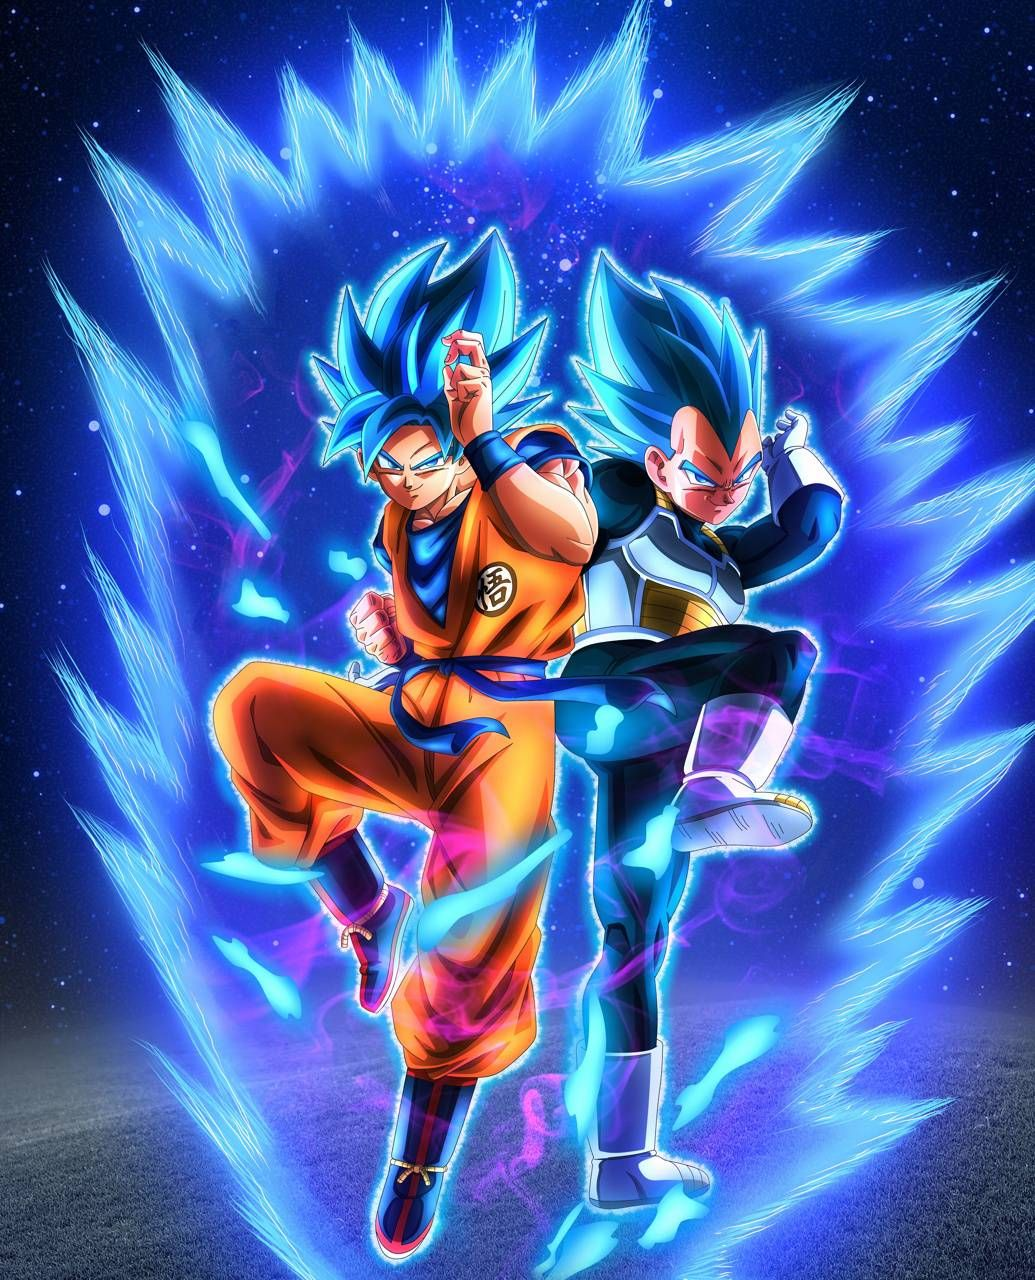 Download Dragon Ball Super Wallpaper By Silverbull735 6f Free On Zedge Now Dragon Ball Super Artwork Dragon Ball Super Wallpapers Anime Dragon Ball Super Dragon ball z wallpaper zedge